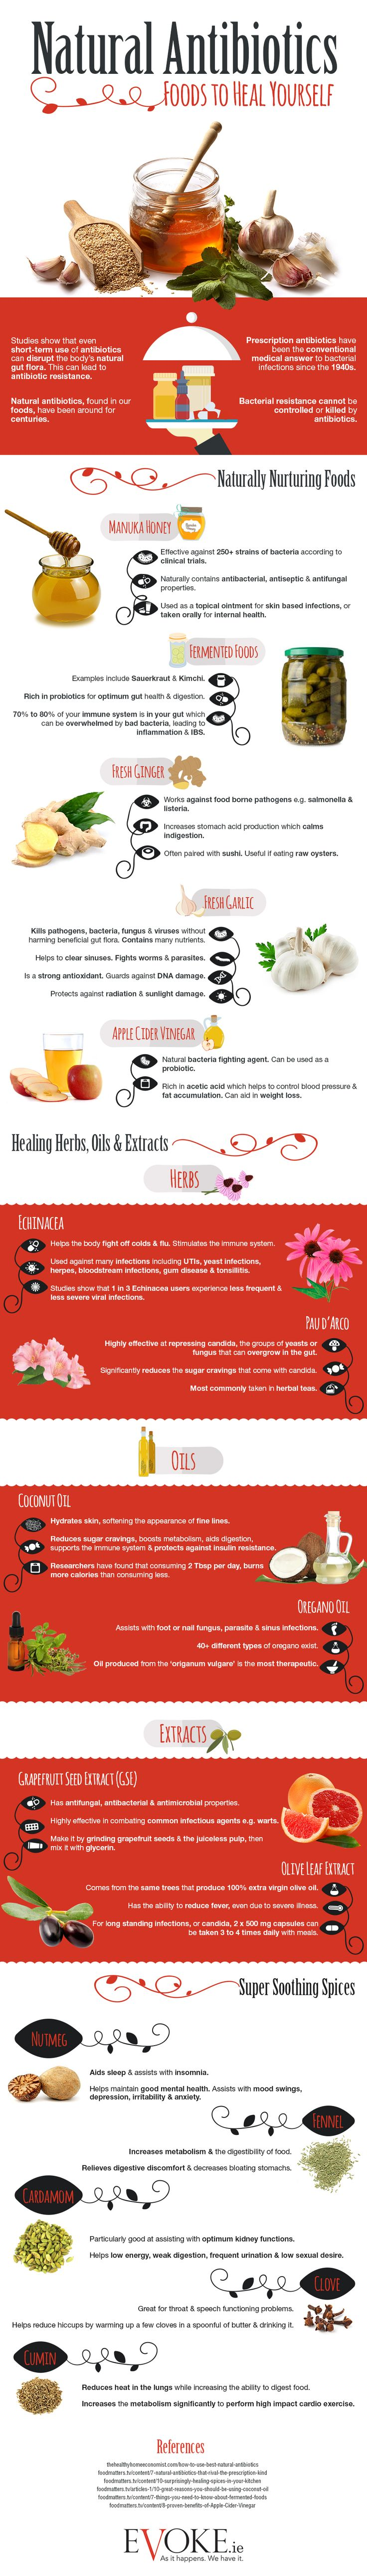 (Infographic) Natural Antibiotics, Foods to Heal Yourself